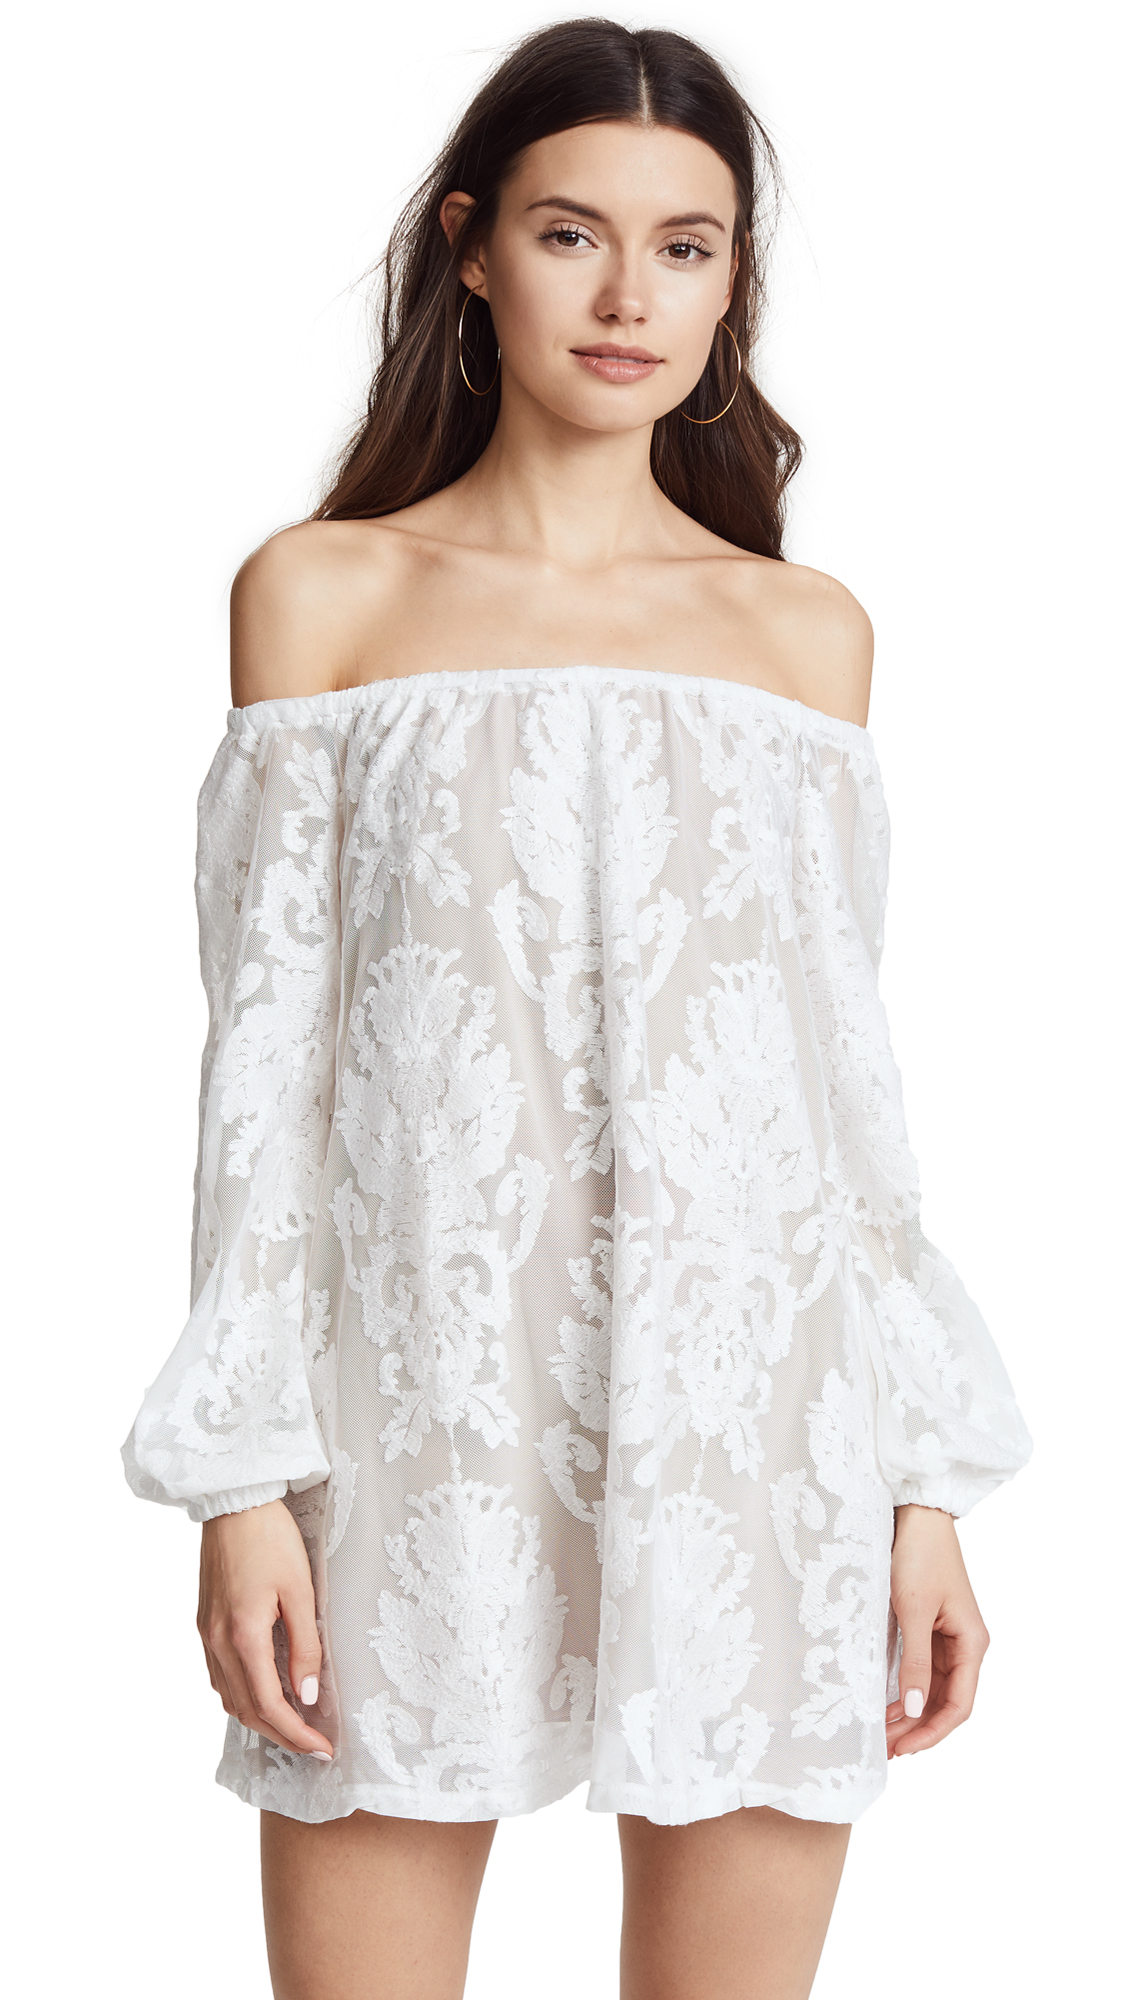 For Love & Lemons Precioso Dress - Ivory